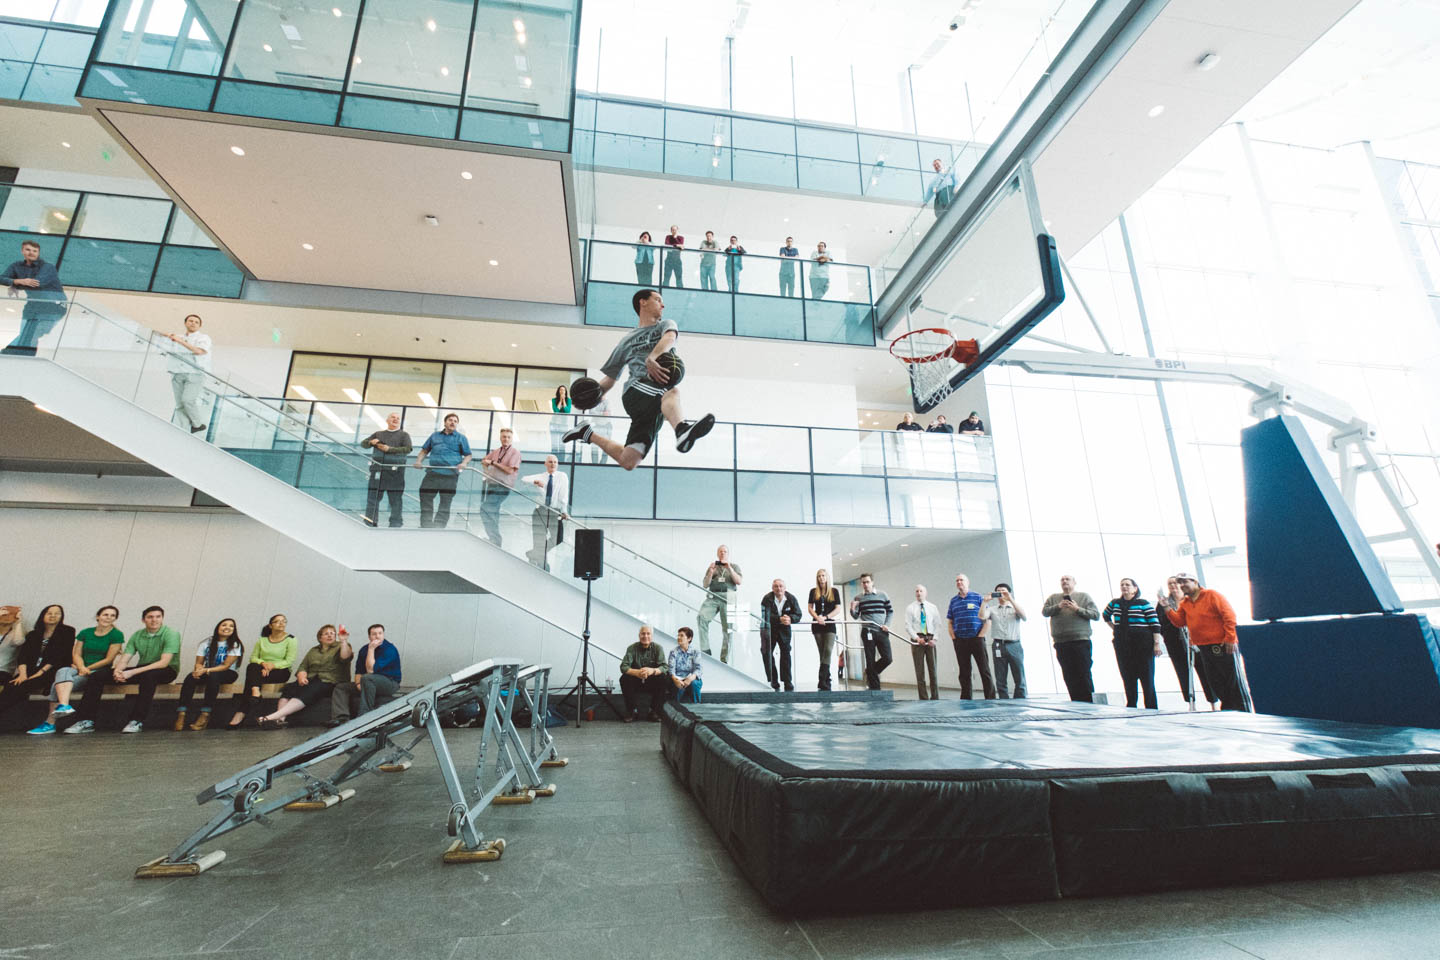 Trampolines help with the basketball aerobatics